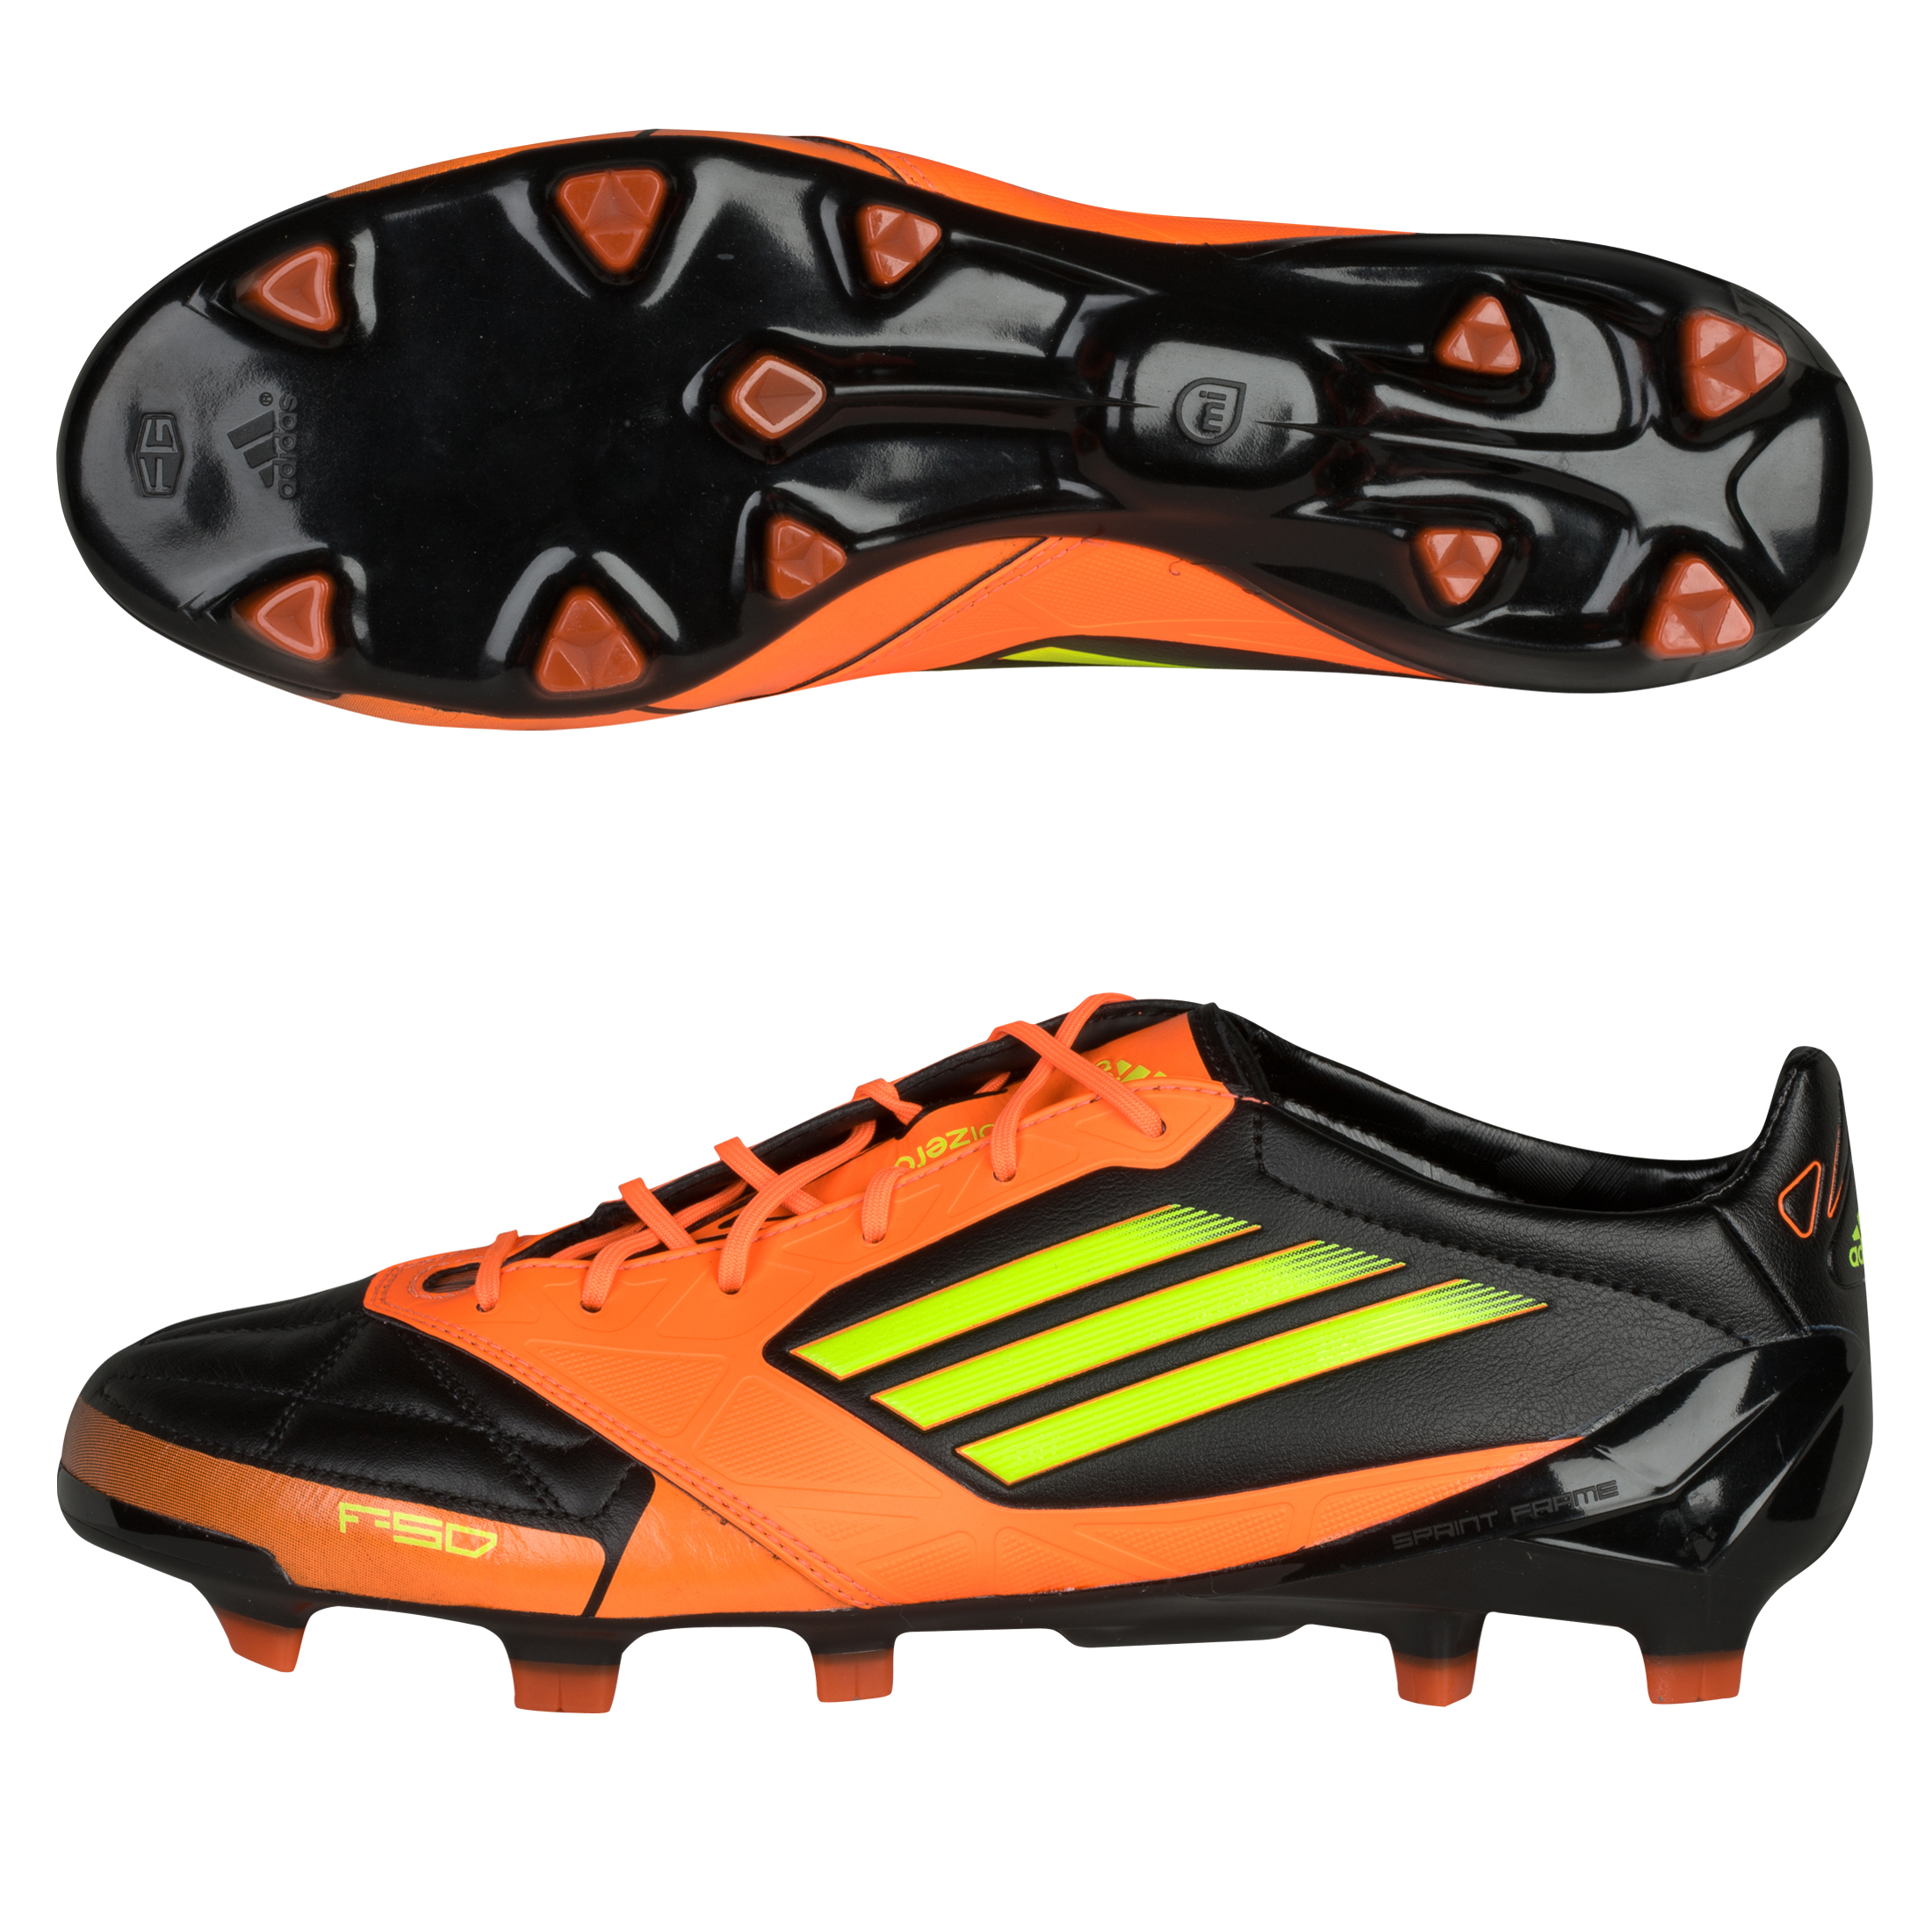 adidas F50 adizero TRX Firm Ground Leather Football Boots - Black 1/Electricity/Warning